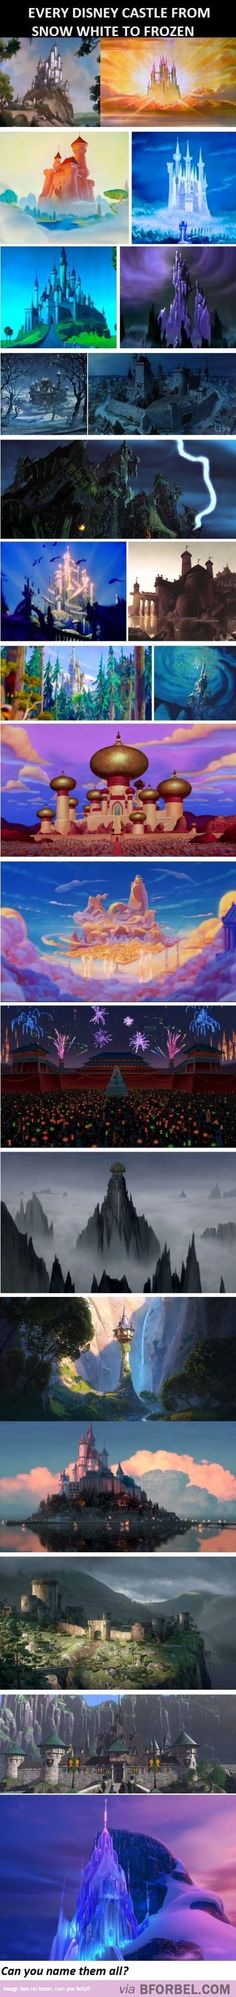 Every Disney castle - inspiration